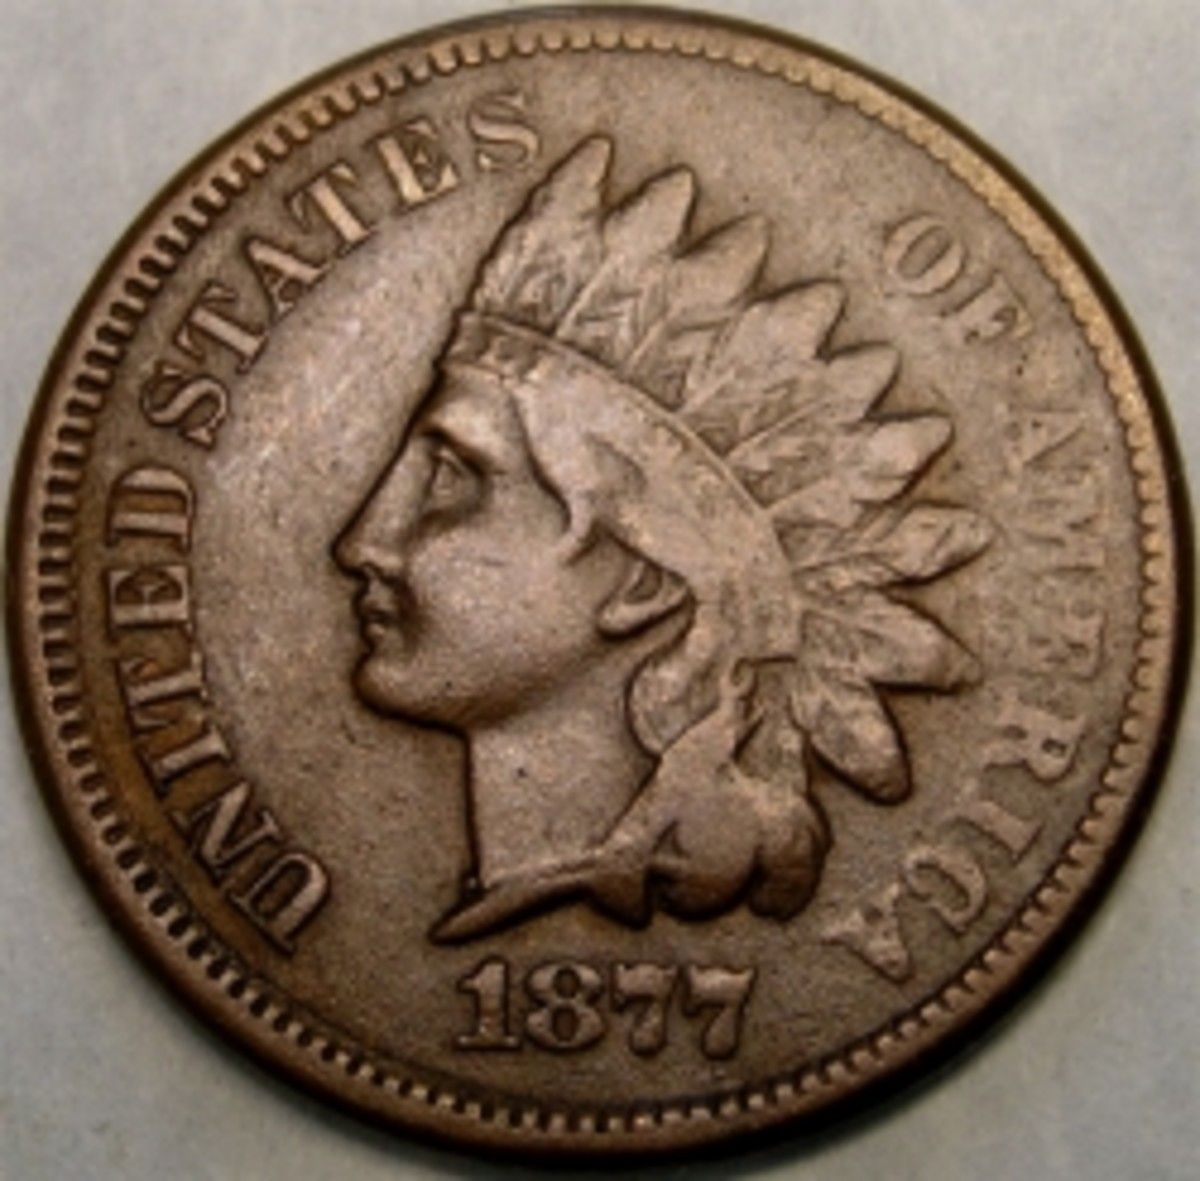 The Ultra Rare 1877 Indian Head Penny